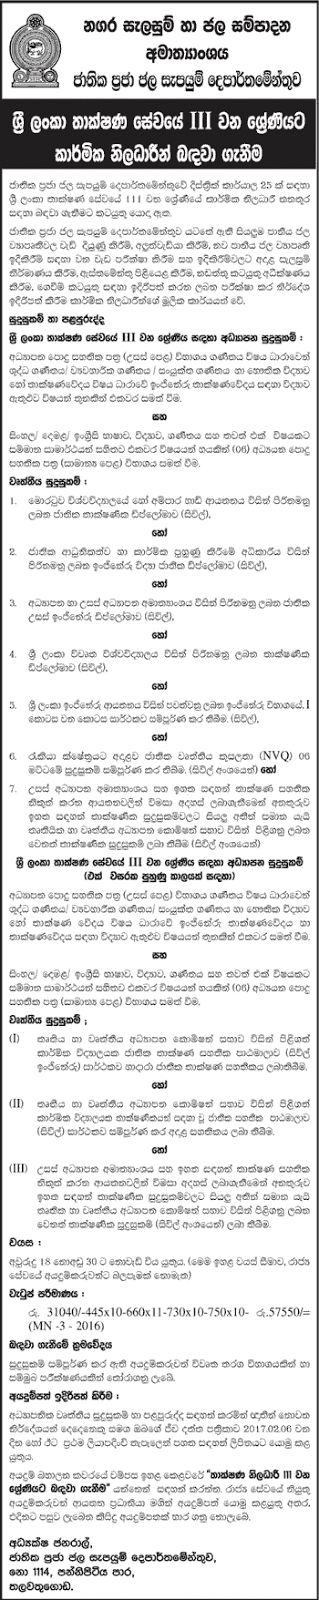 Sri Lankan Government Job Vacancies at Ministry of City Planning and Water Supply for Technicians